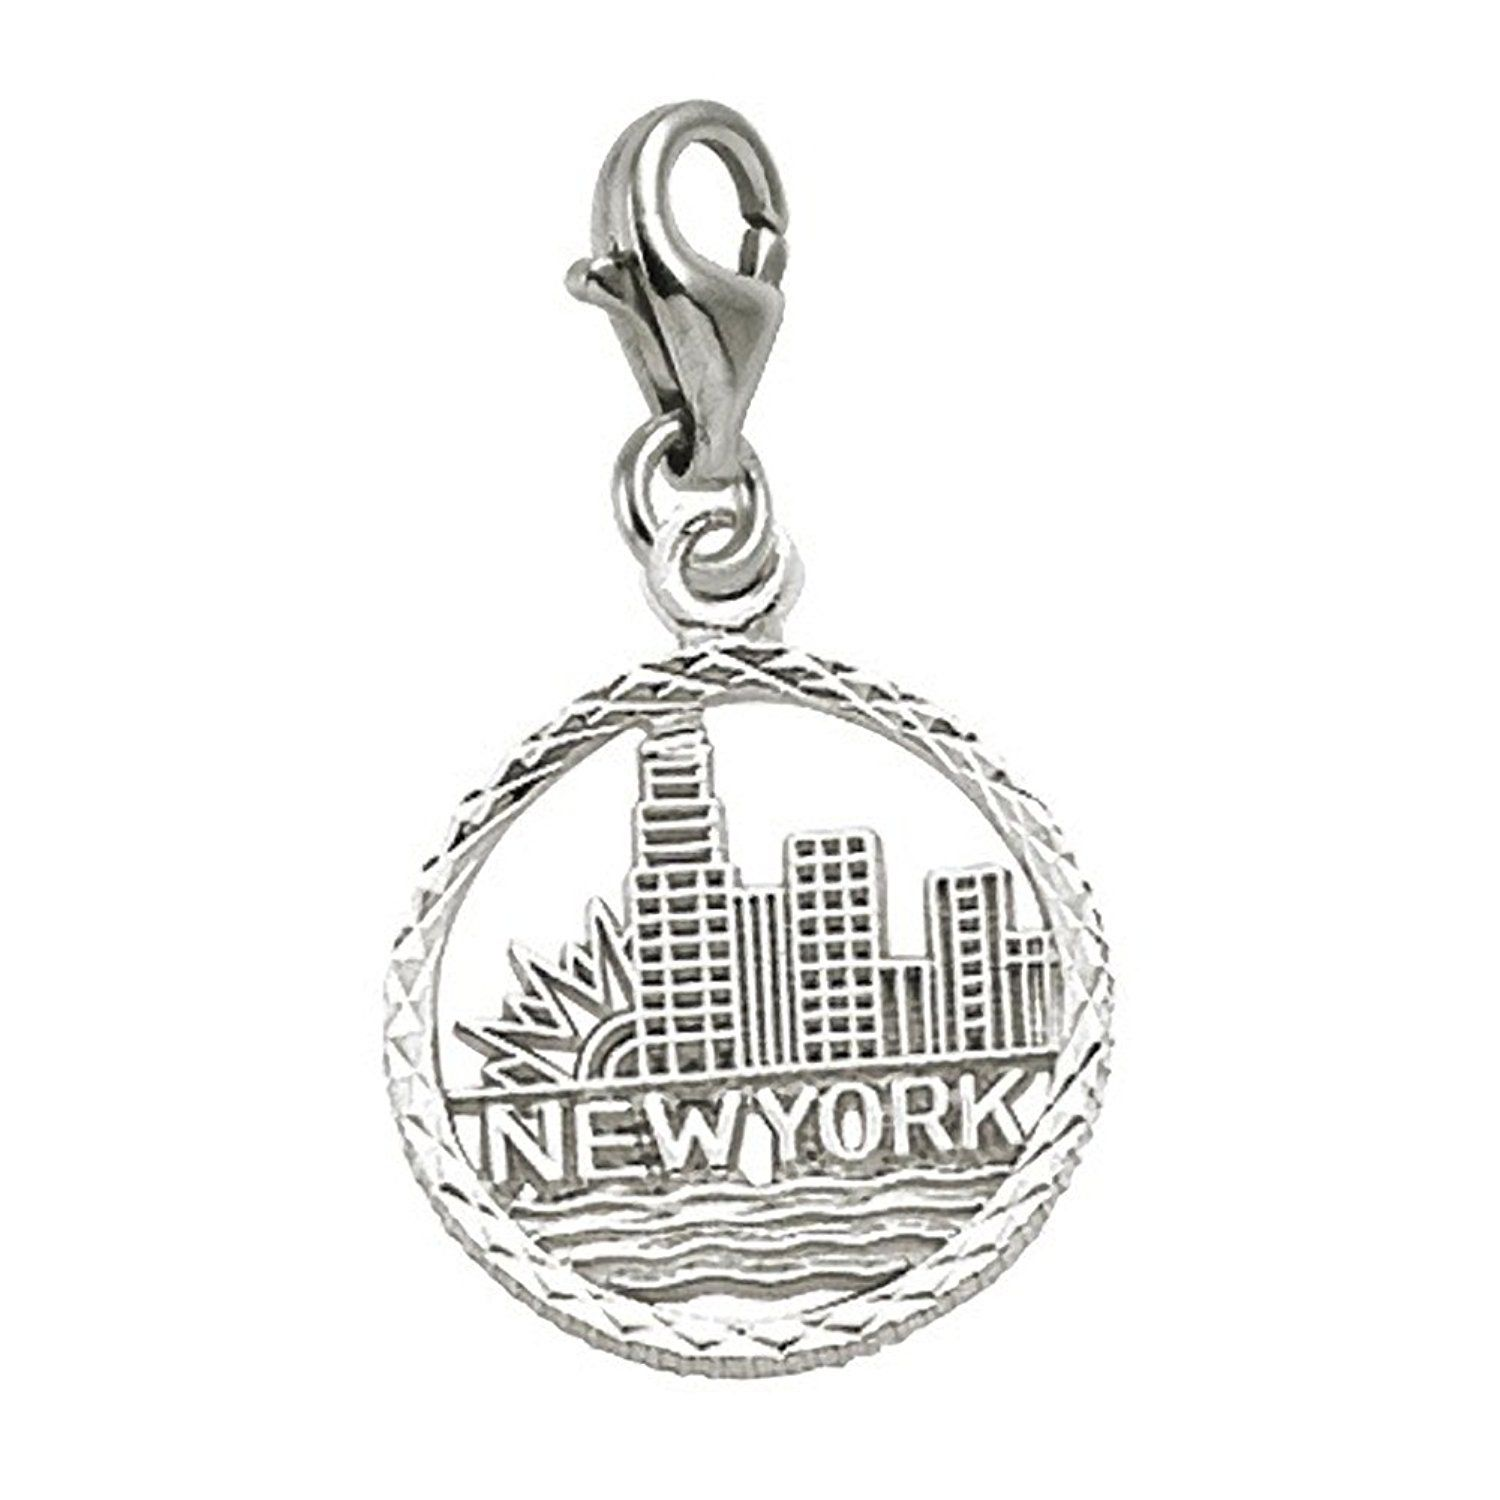 Charms for Bracelets and Necklaces New York Skyline Charm With Lobster Claw Clasp